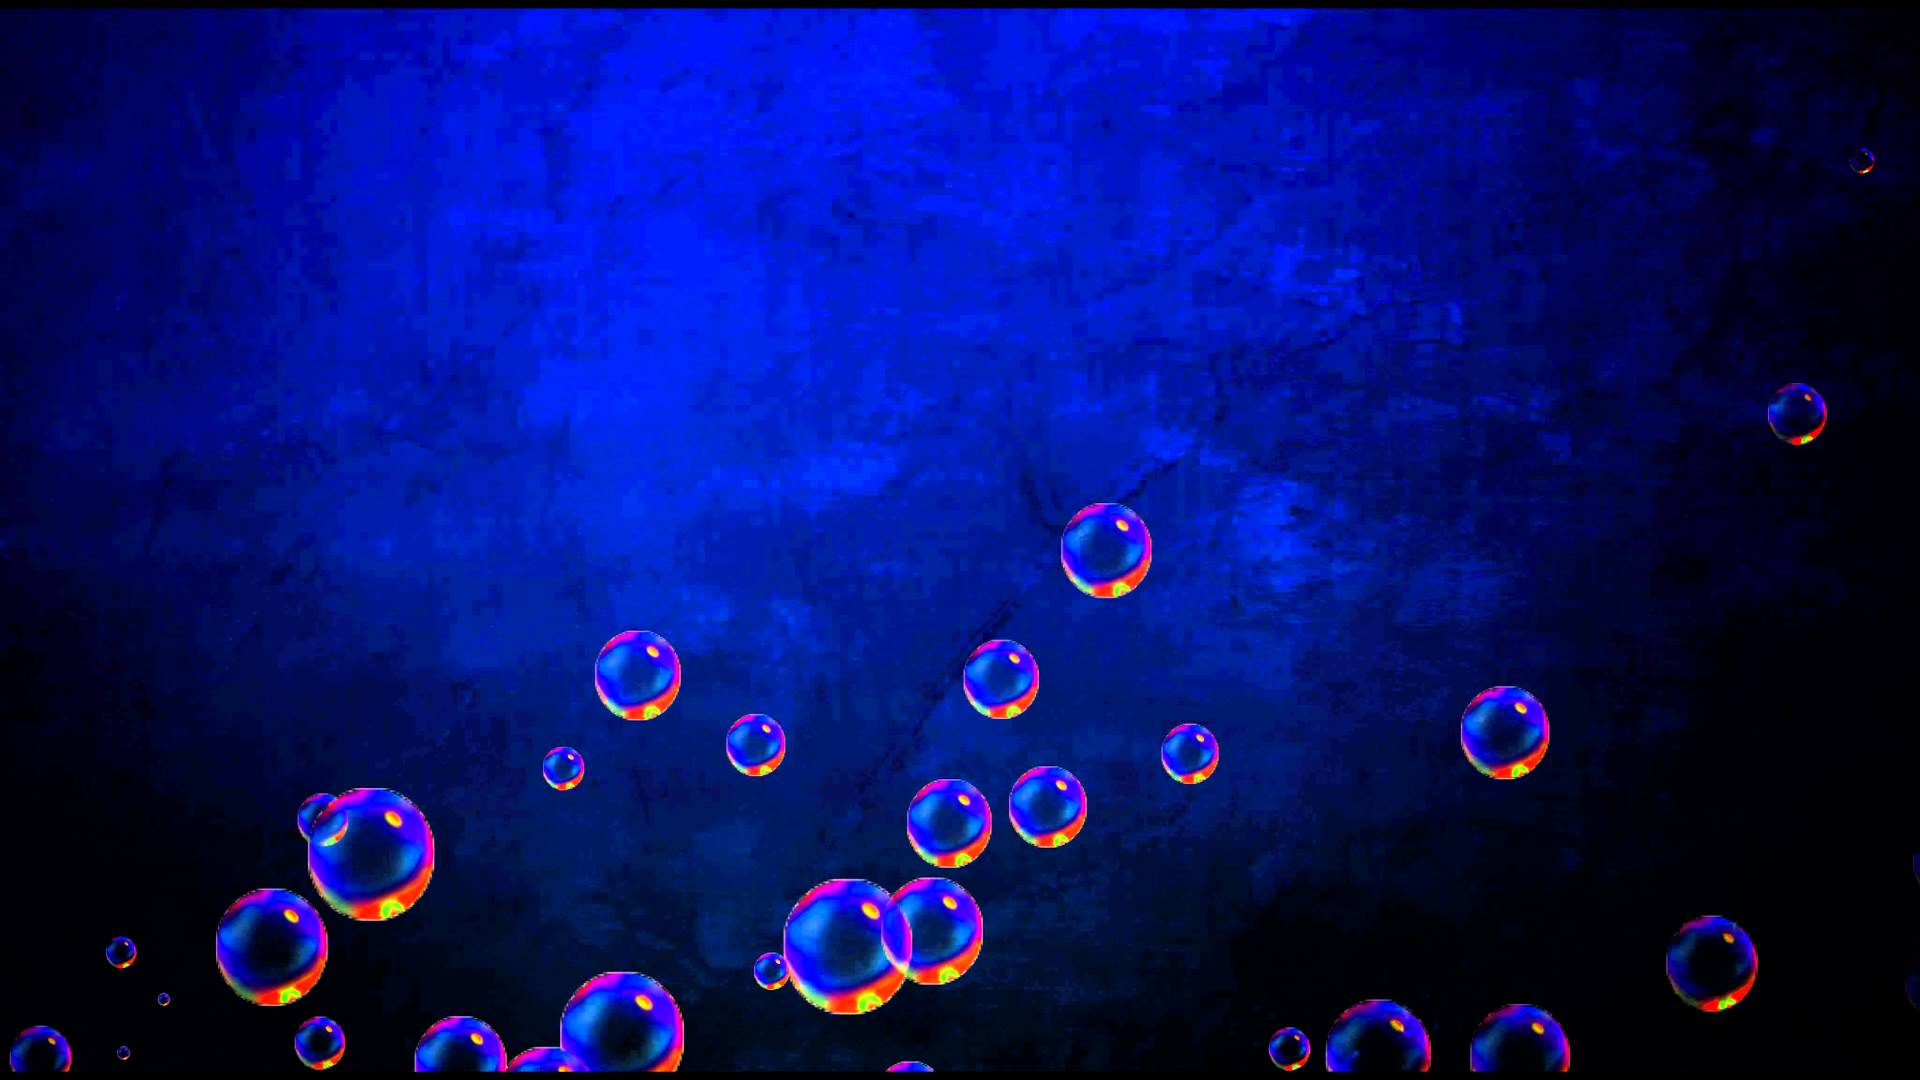 FREE 4K MOVING BACKGROUND   Bubbles 1920x1080